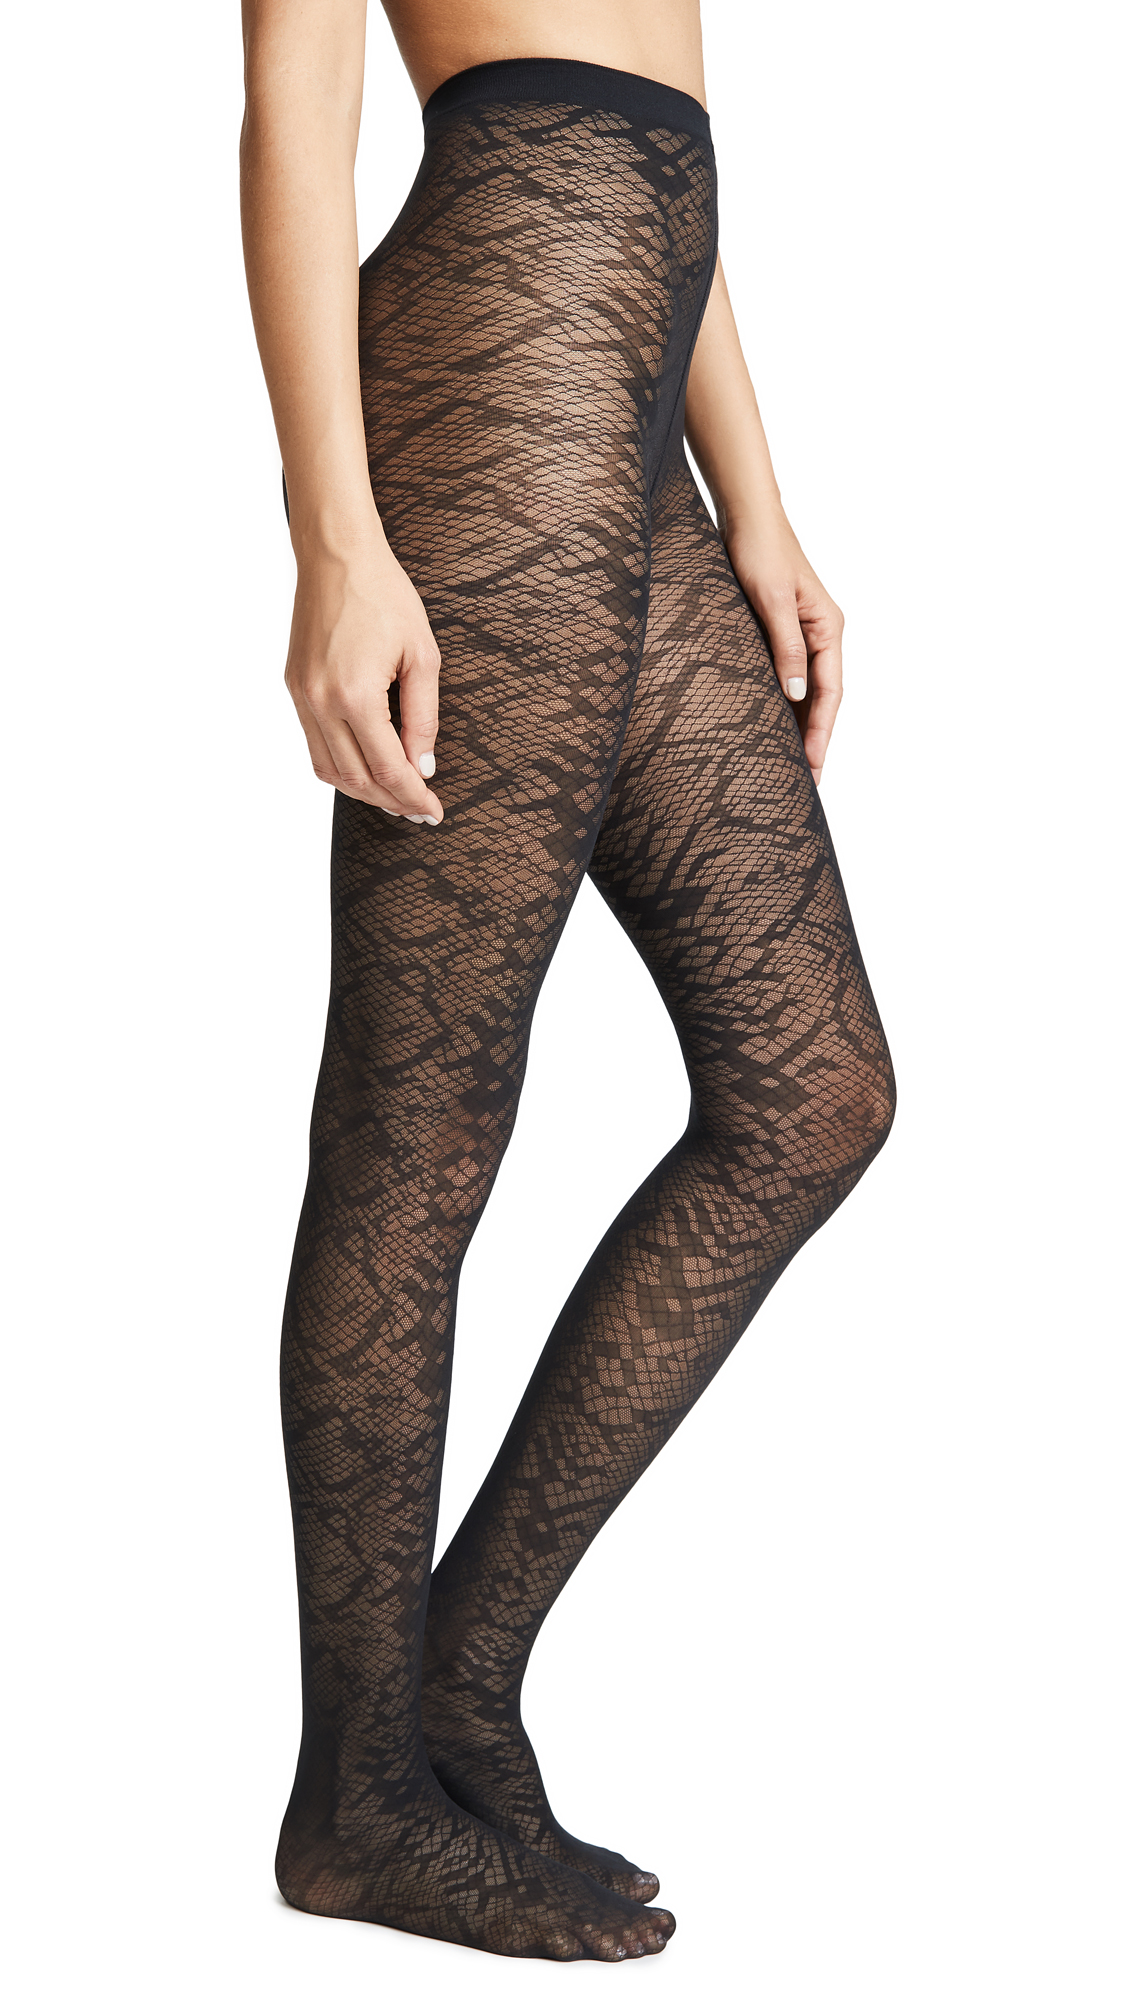 Wolford Albertina Tights In Black/Black